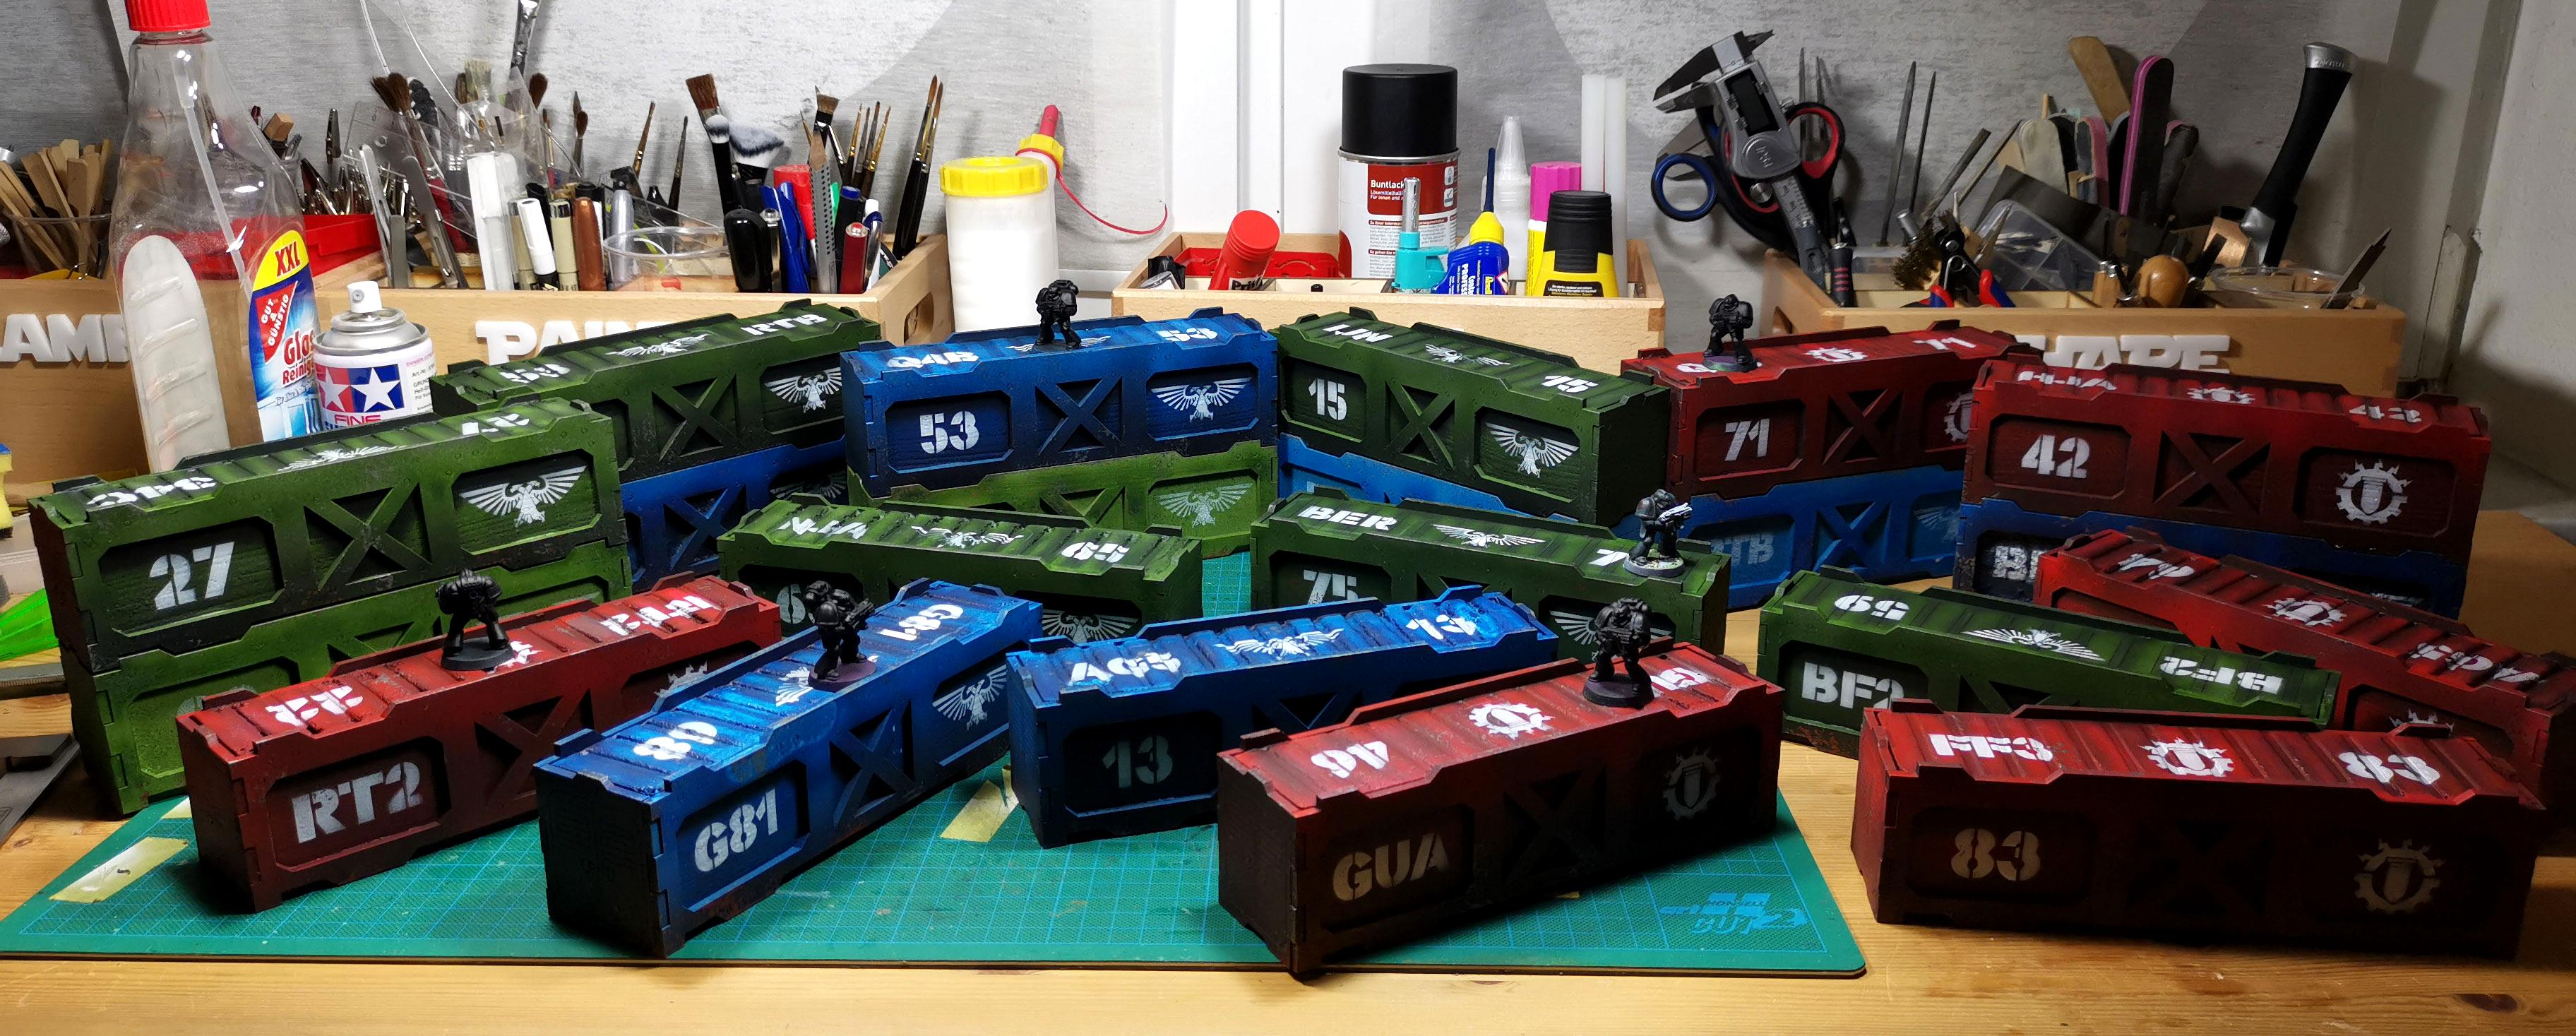 Container, Laser, Mdf, Terrain, Xps